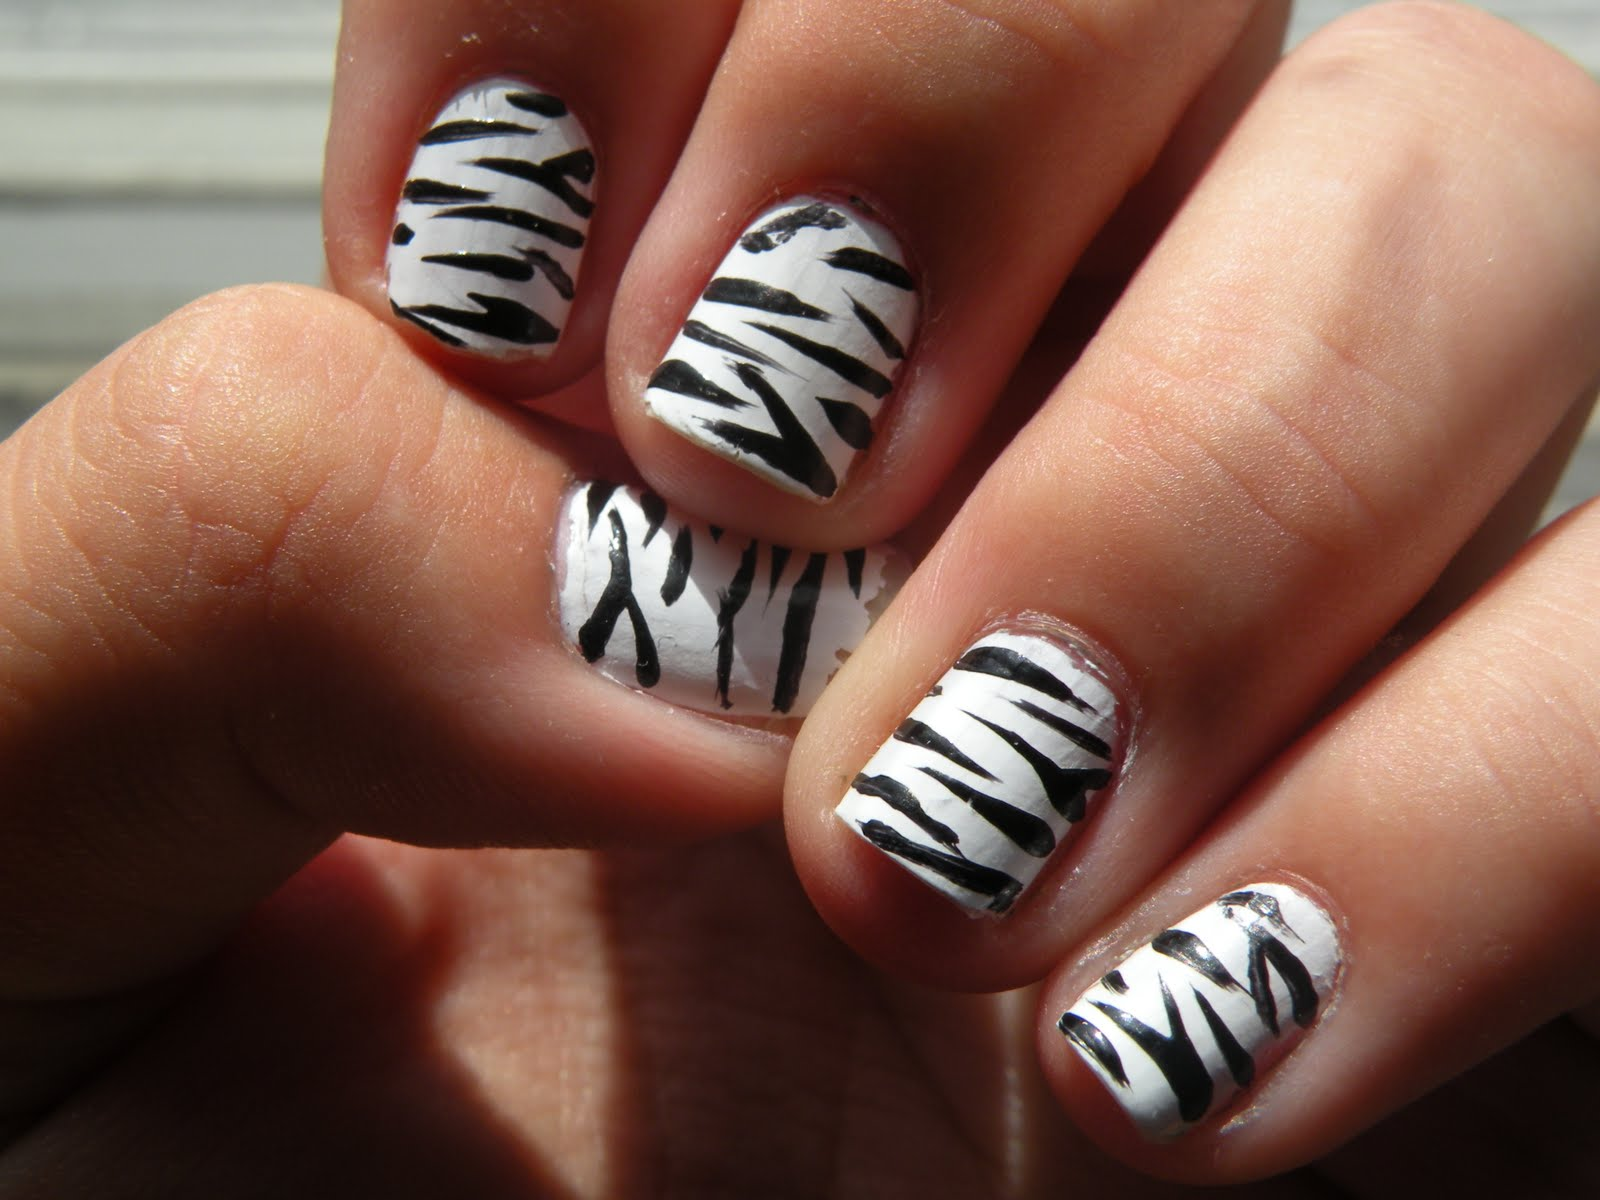 Nail art design with white base cute and dainty nail art designs cute and dainty nail art designs with a white base glam radar view images prinsesfo Images